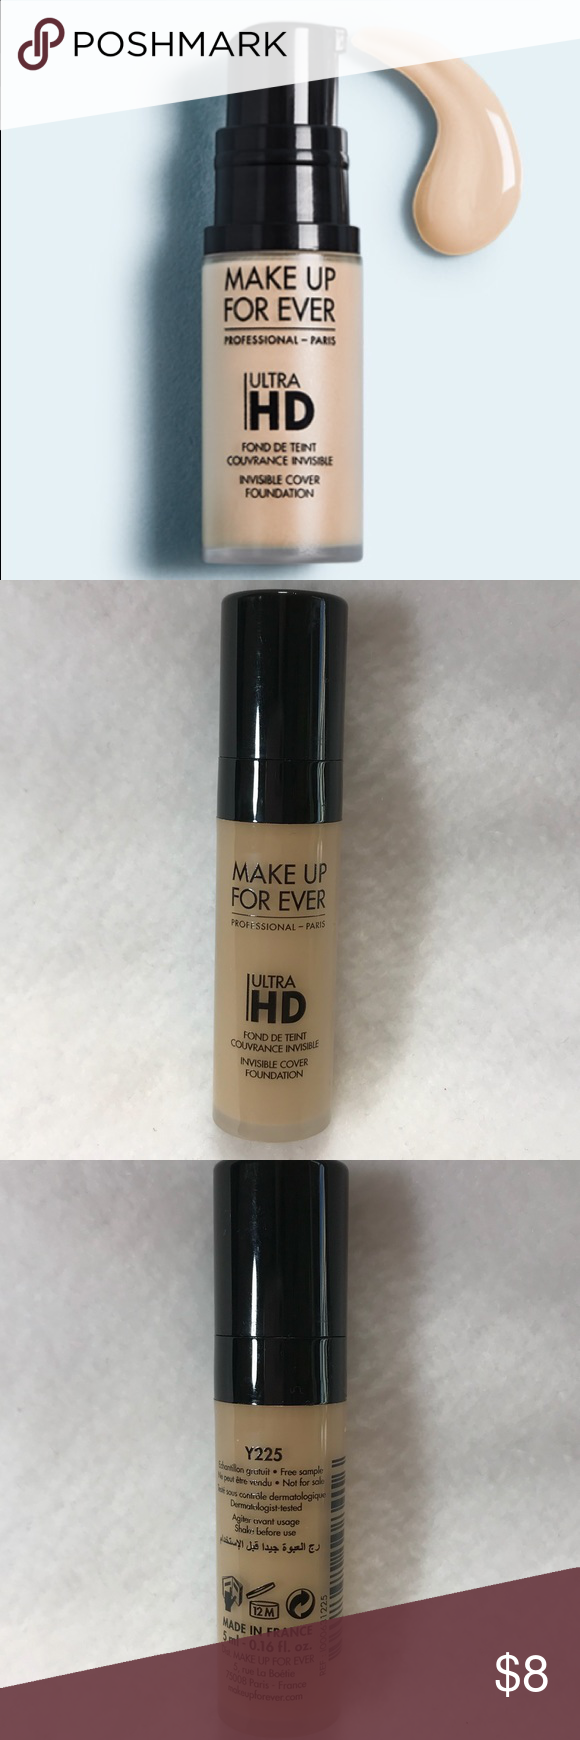 Make Up For Ever Ultra HD Liquid Foundation Y225 Make up